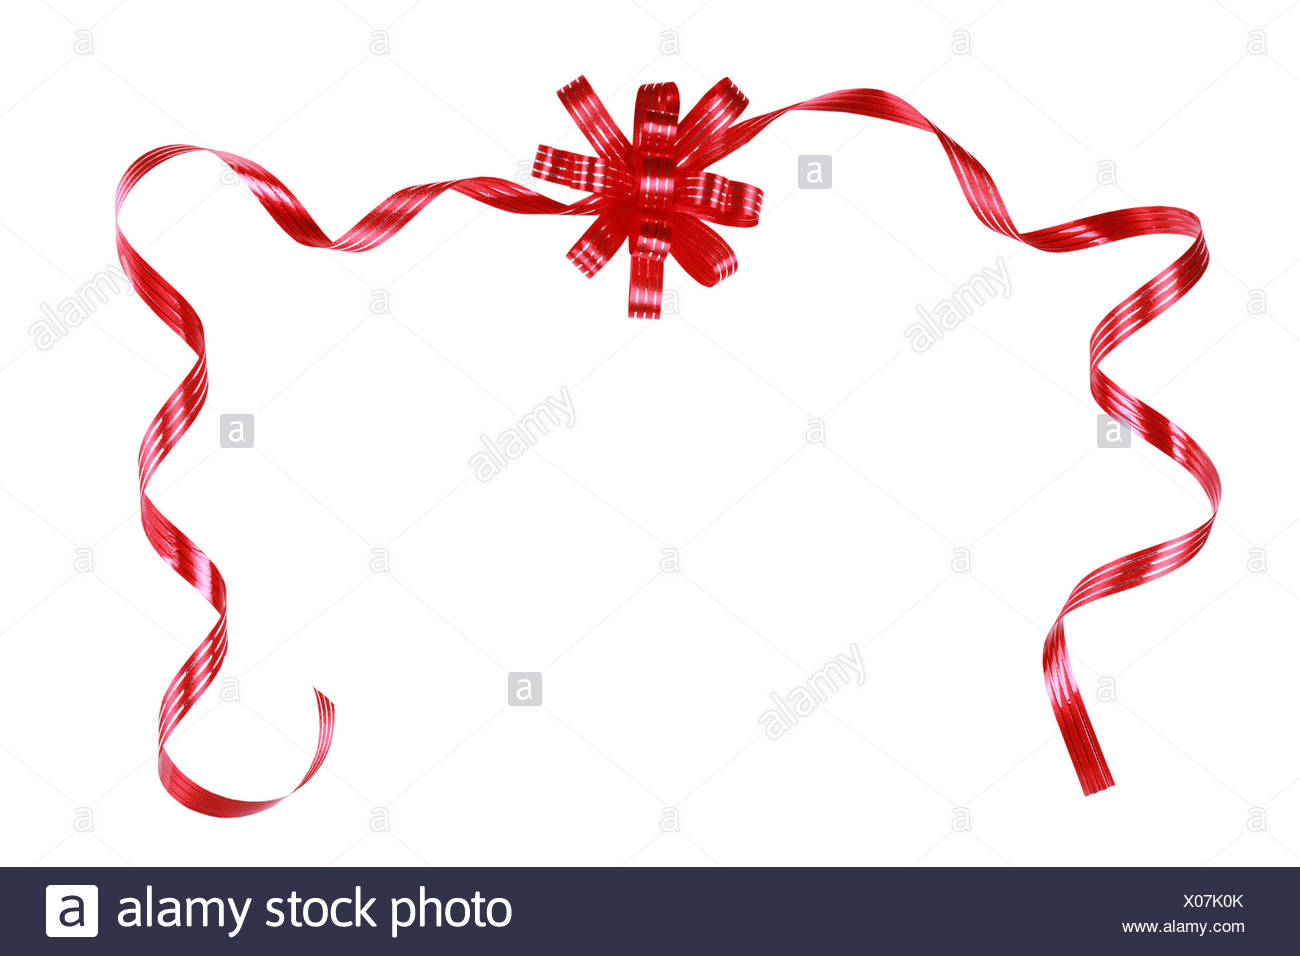 isolated, holiday, dapper, accosting, pretty, prettily, prettier, ravishing, - Stock Image